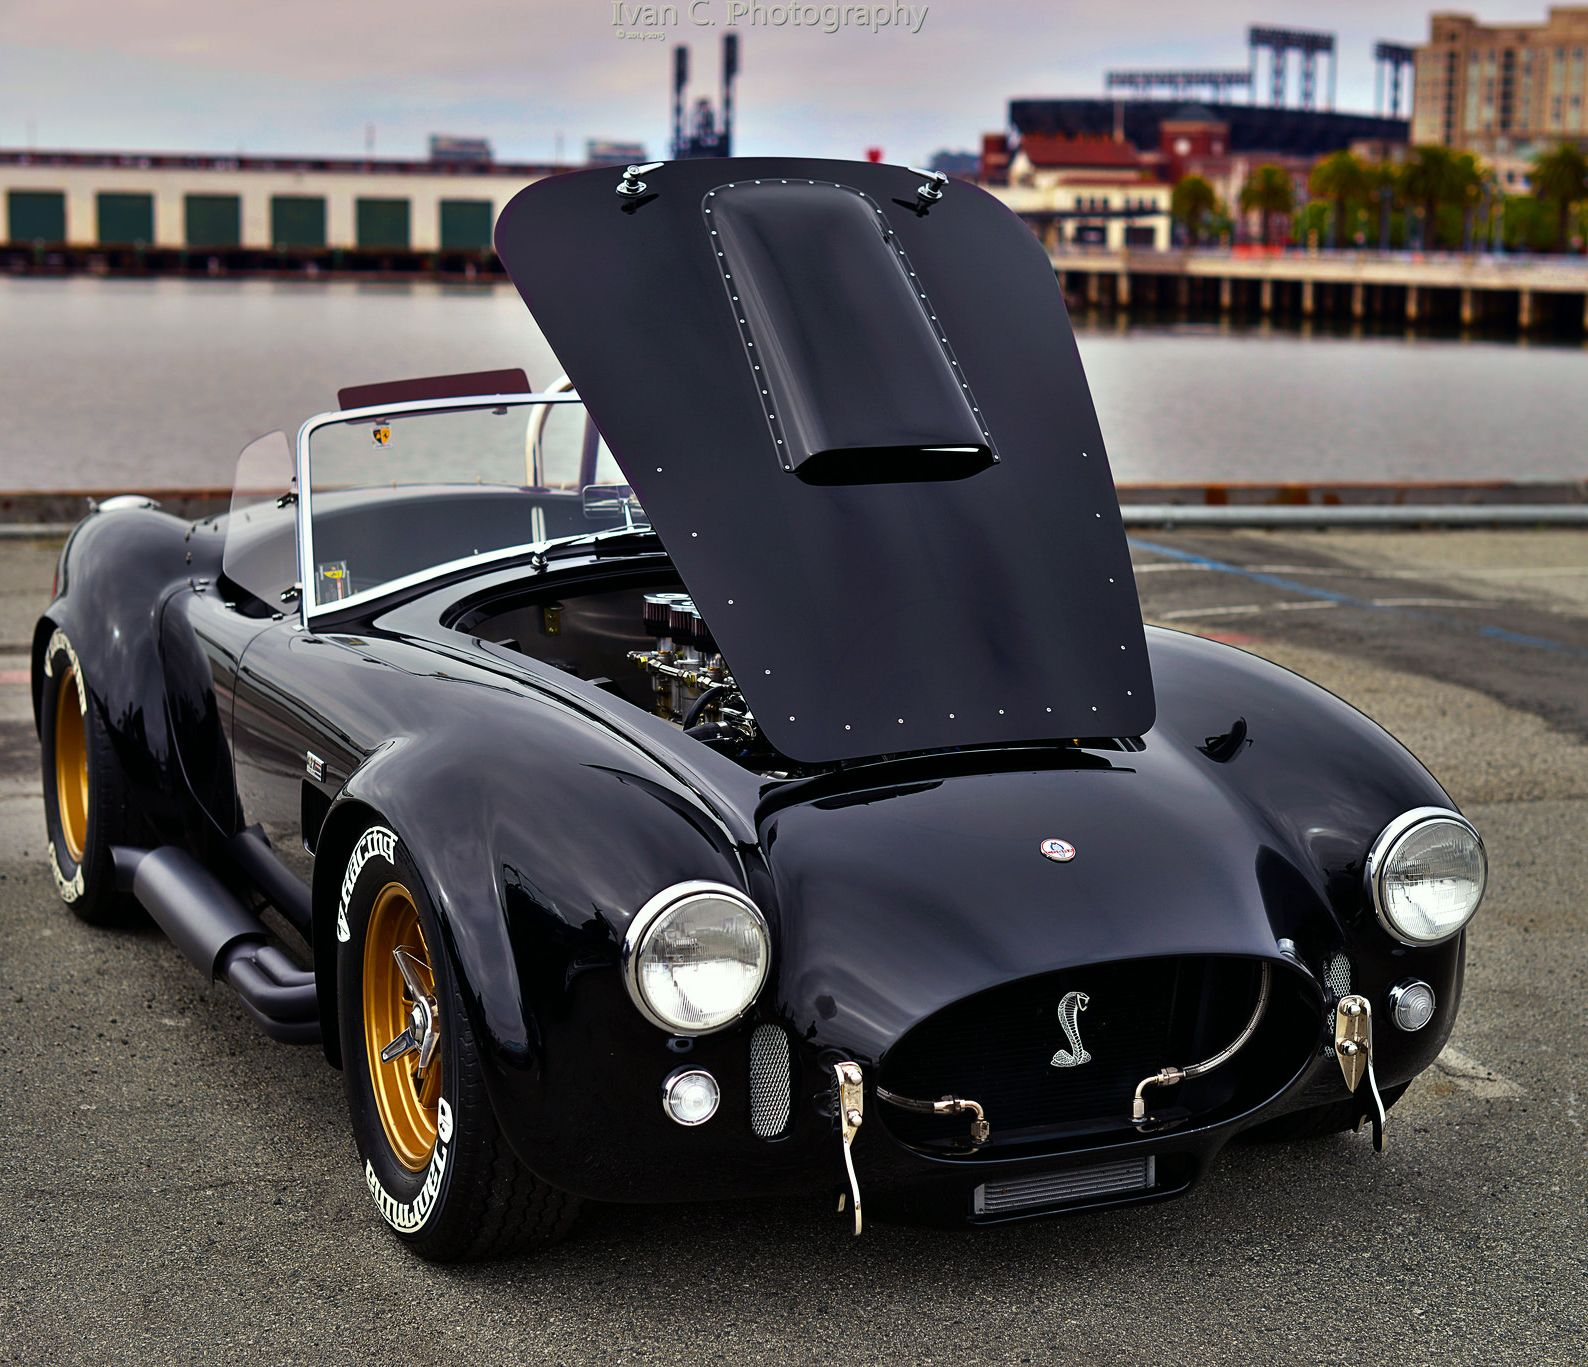 Best of ford machine ❤ beautiful black gold ac cobra